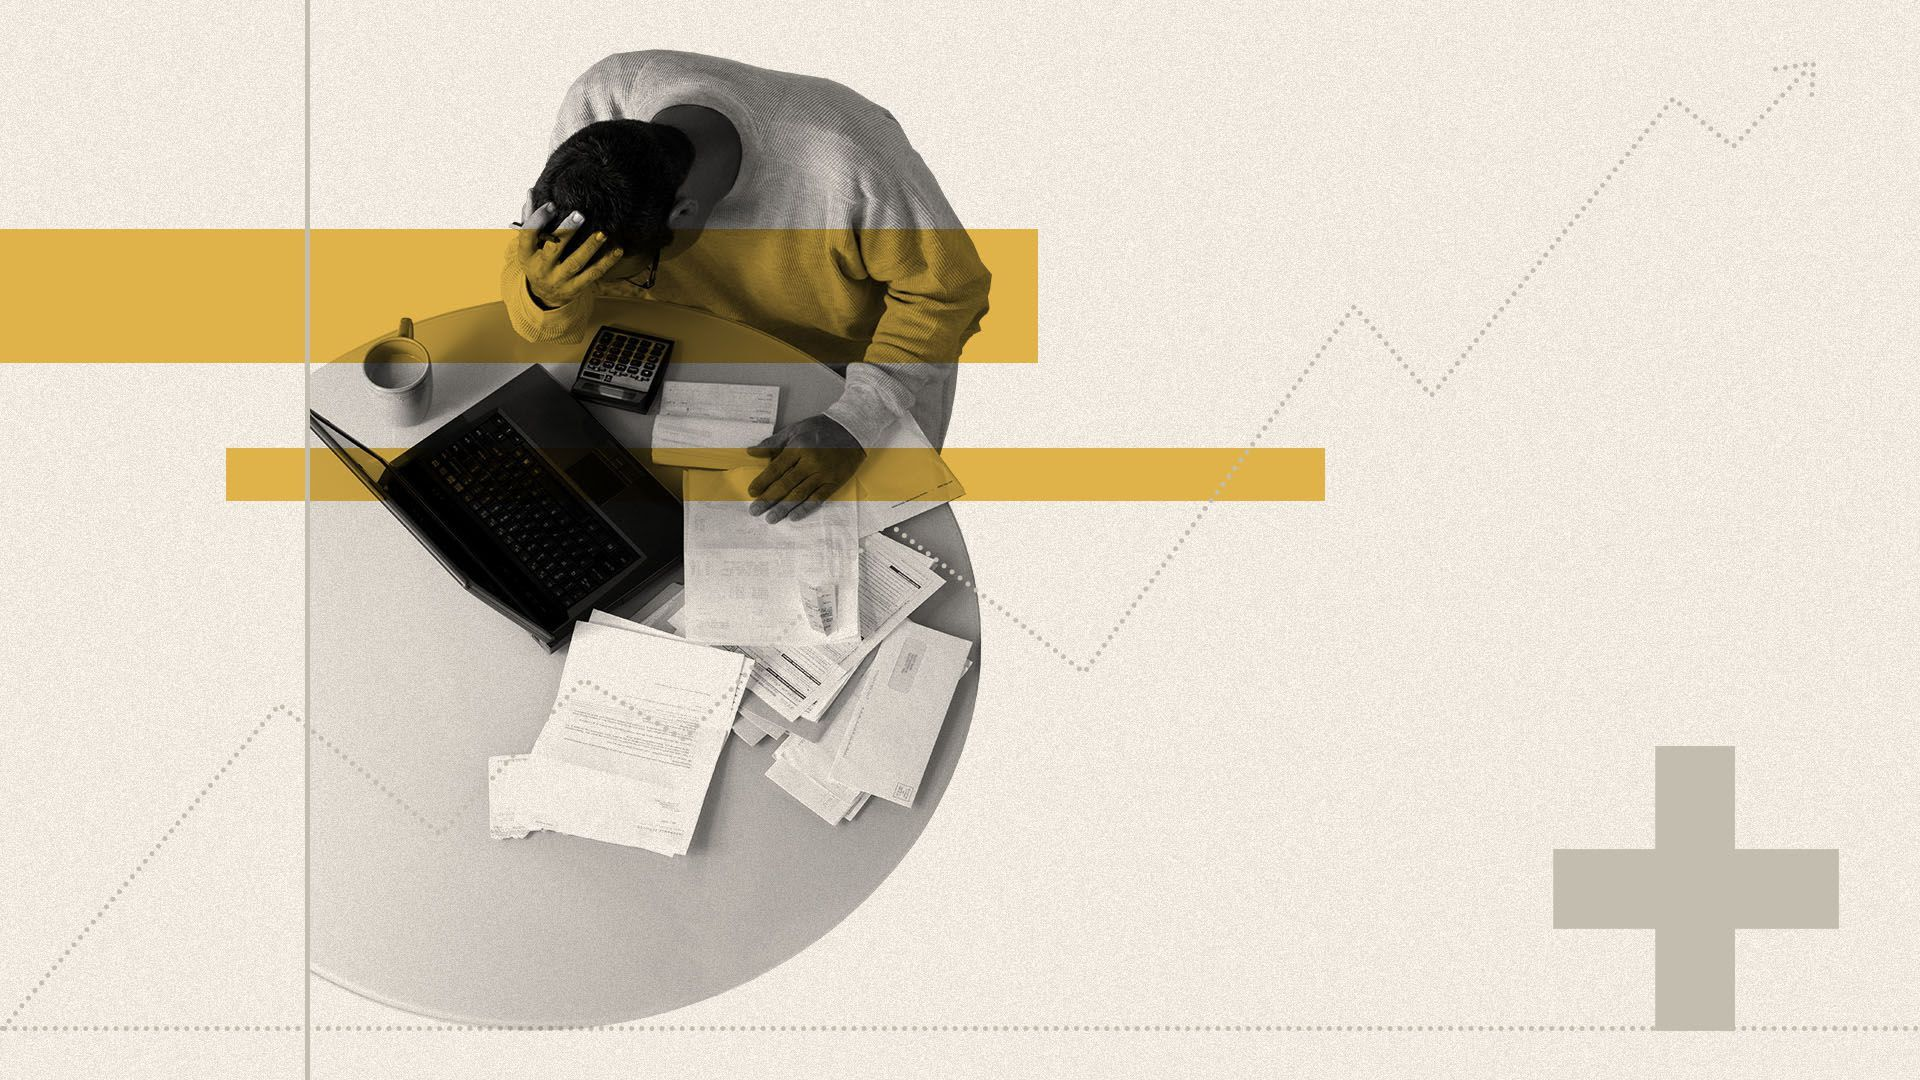 Illustration of a man hunched over a desk covered in papers